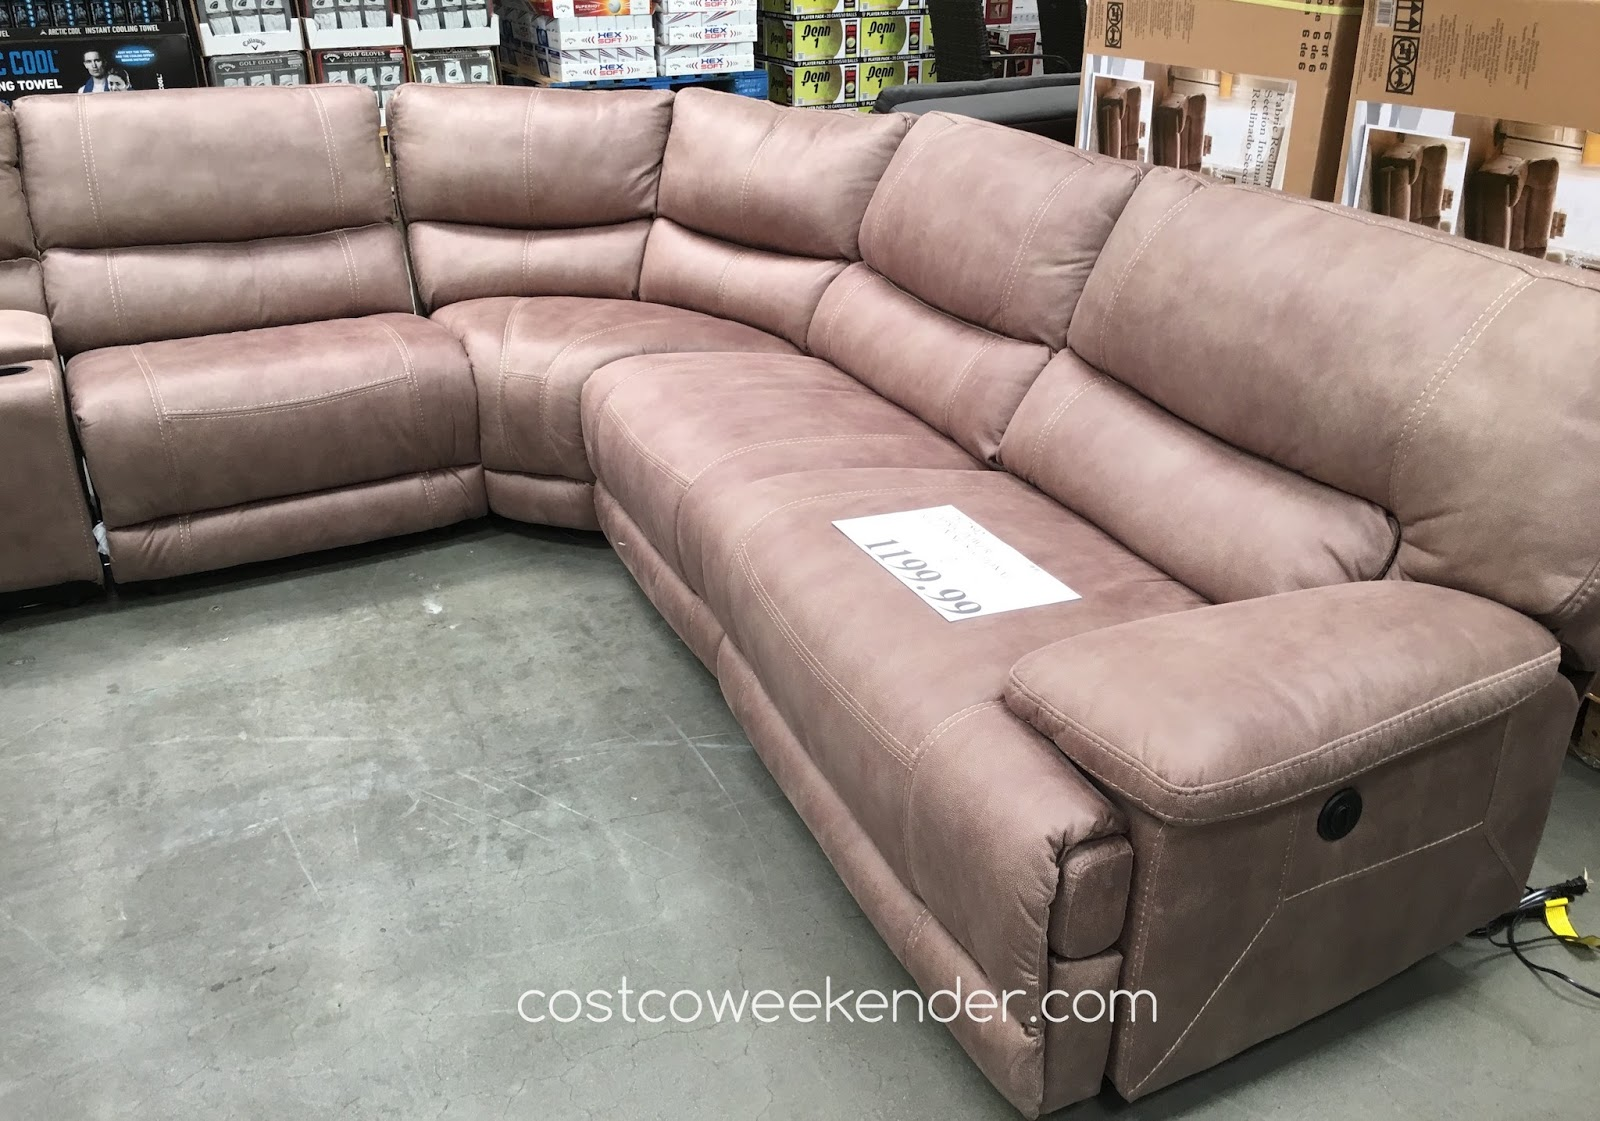 Fabric Sectional Sofa With Recliner Tufted Power Reclining Costco Weekender